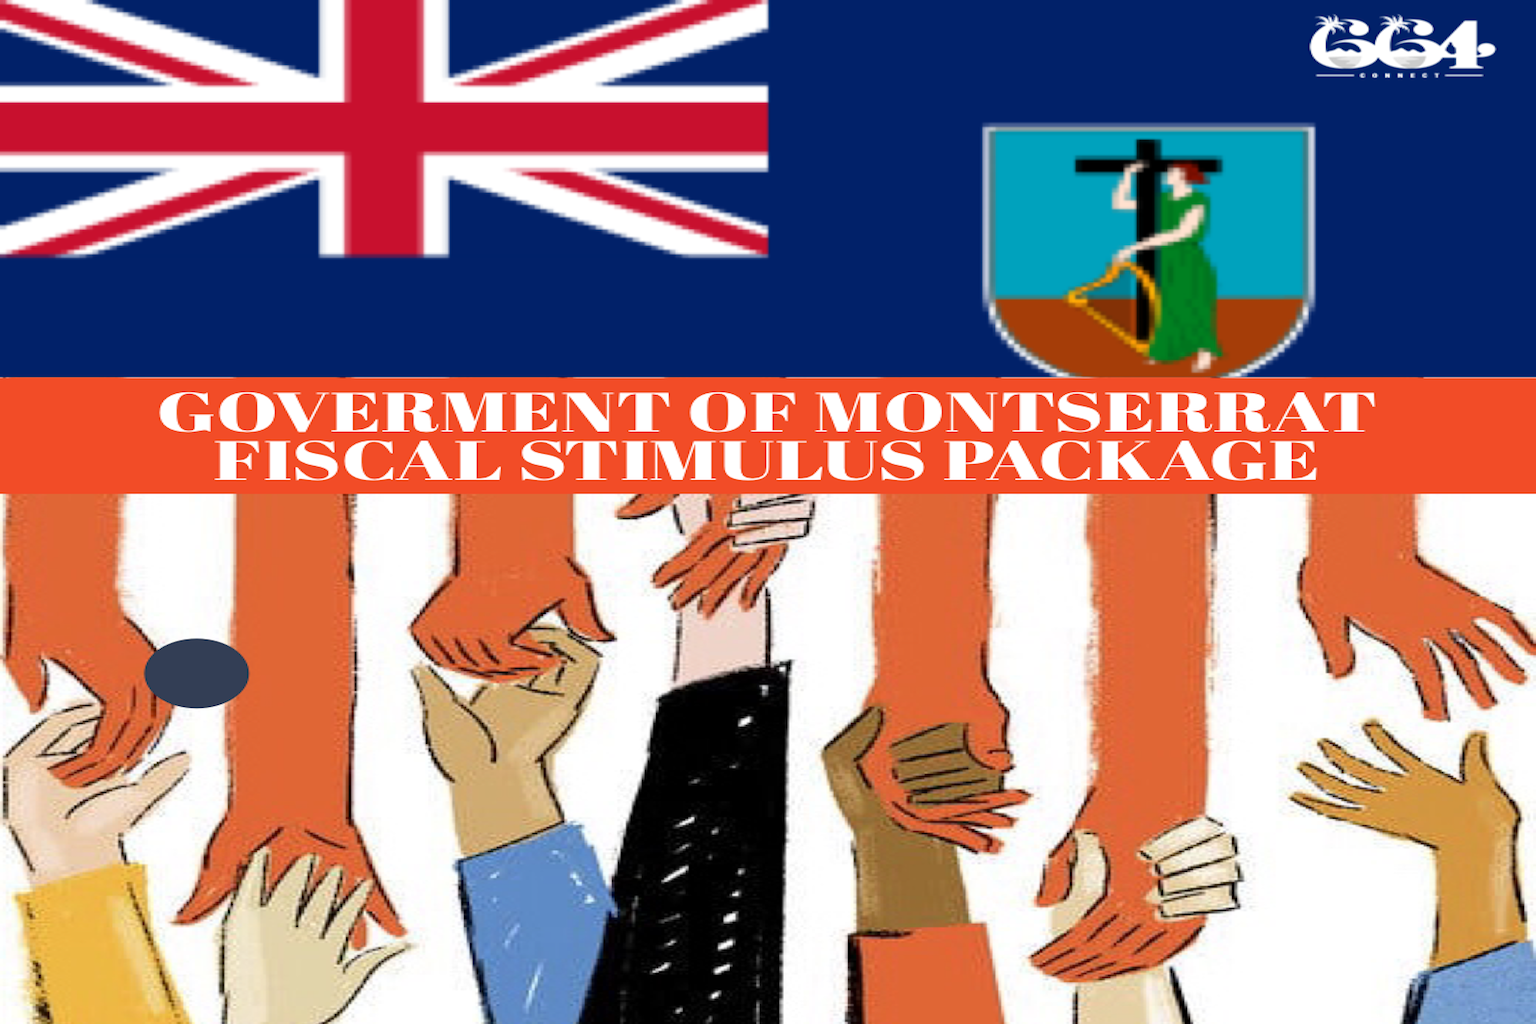 Government of Montserrat Fiscal Stimulus Package